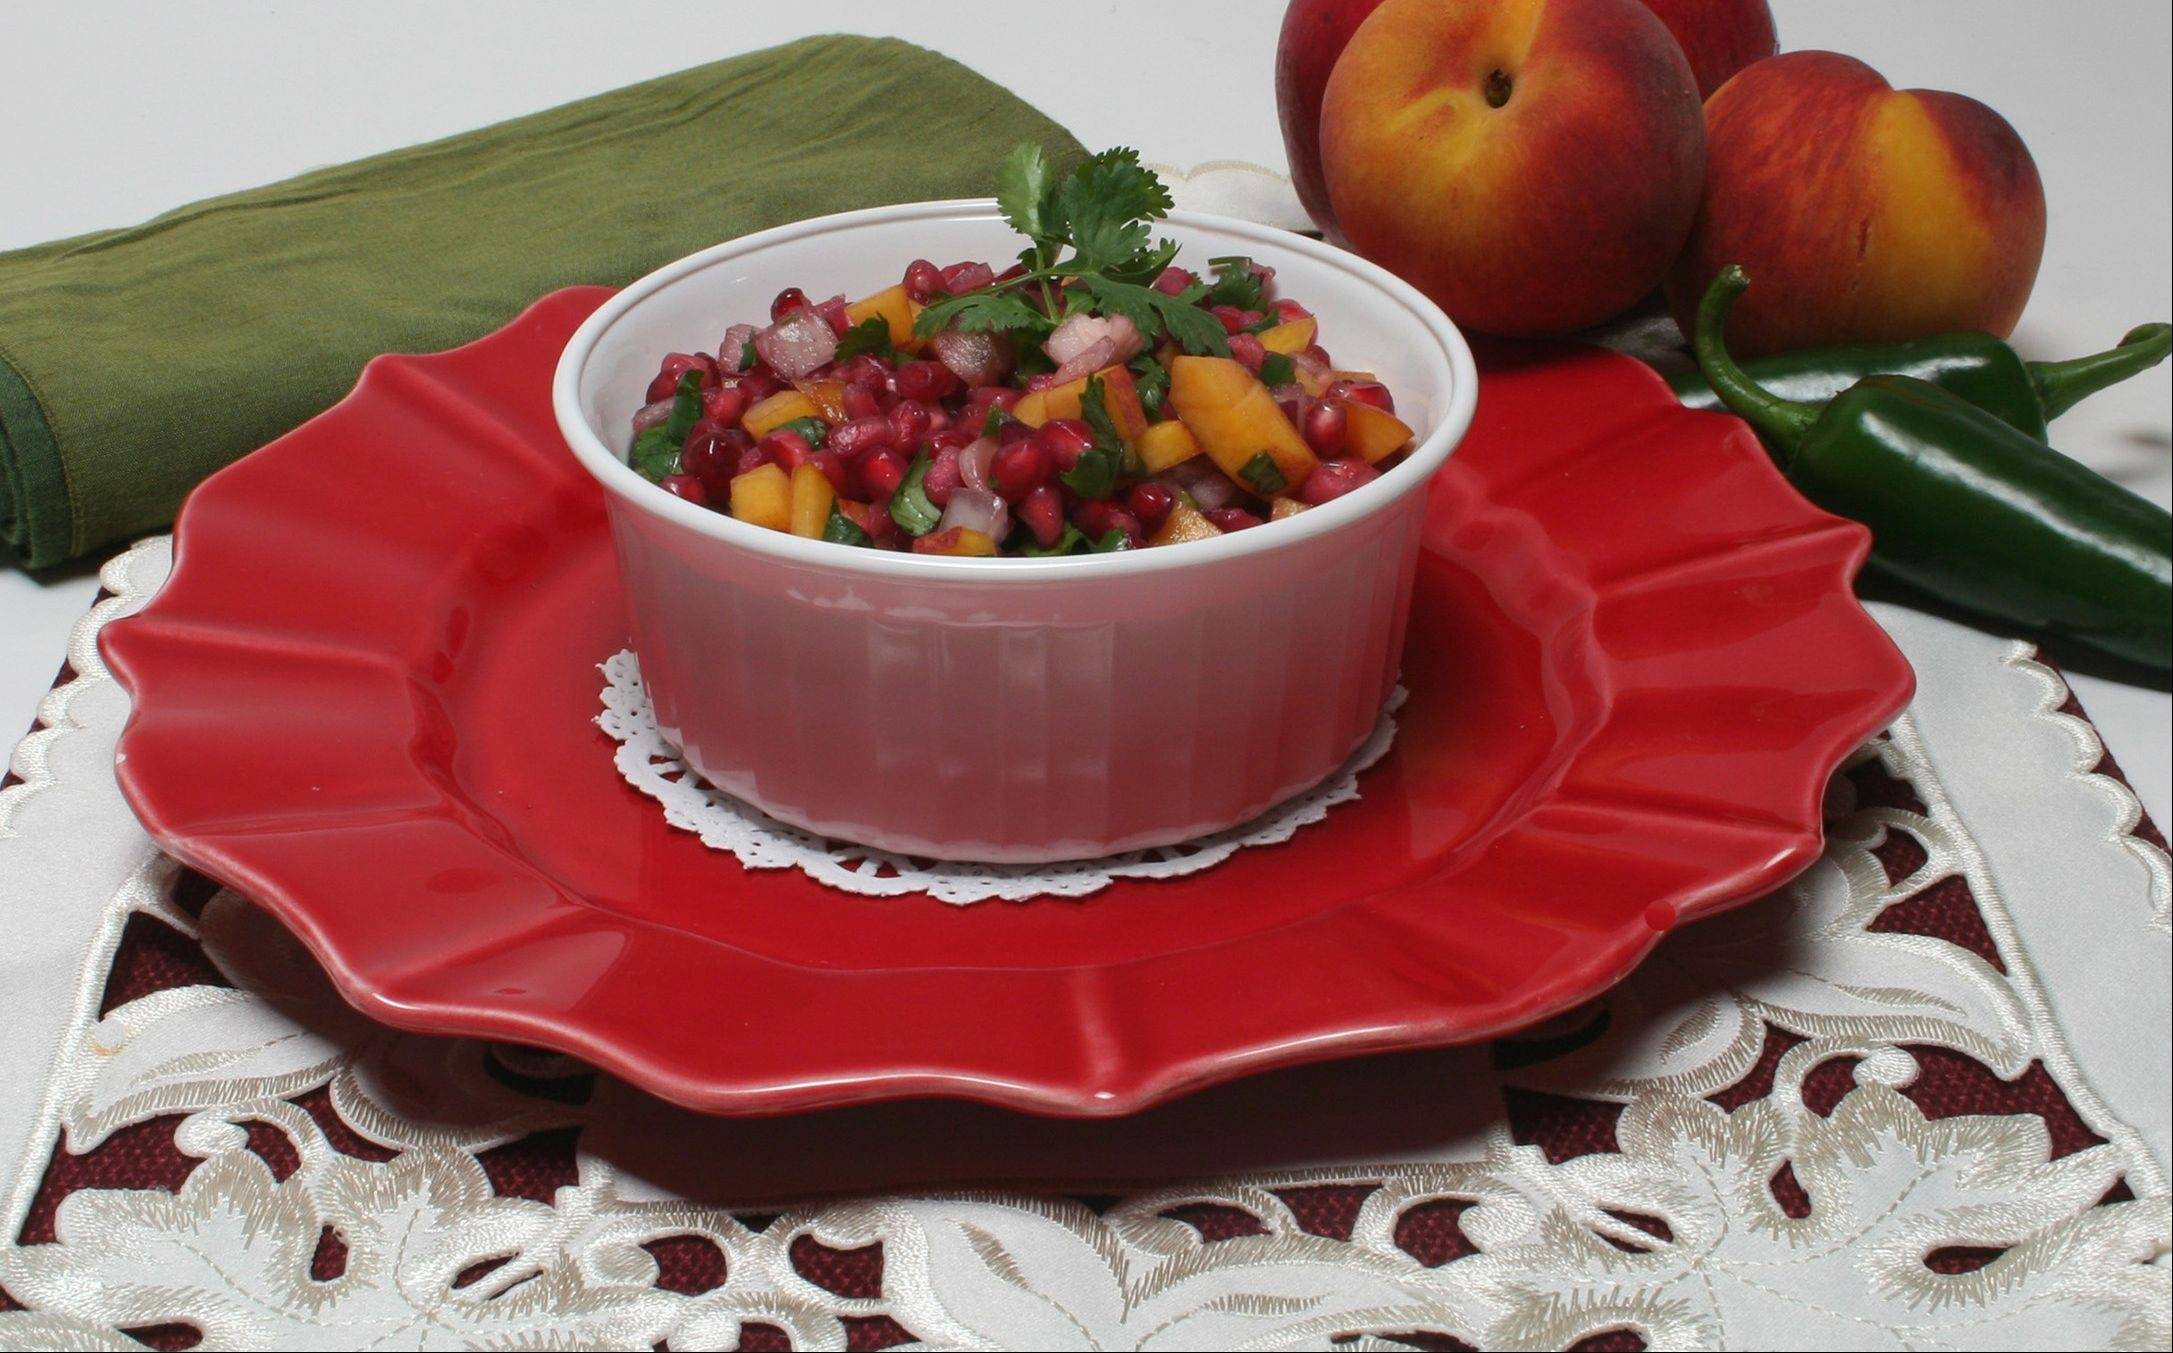 Enjoy Pomegranate Salsa with chips or as a garnish for holiday fish or pork.